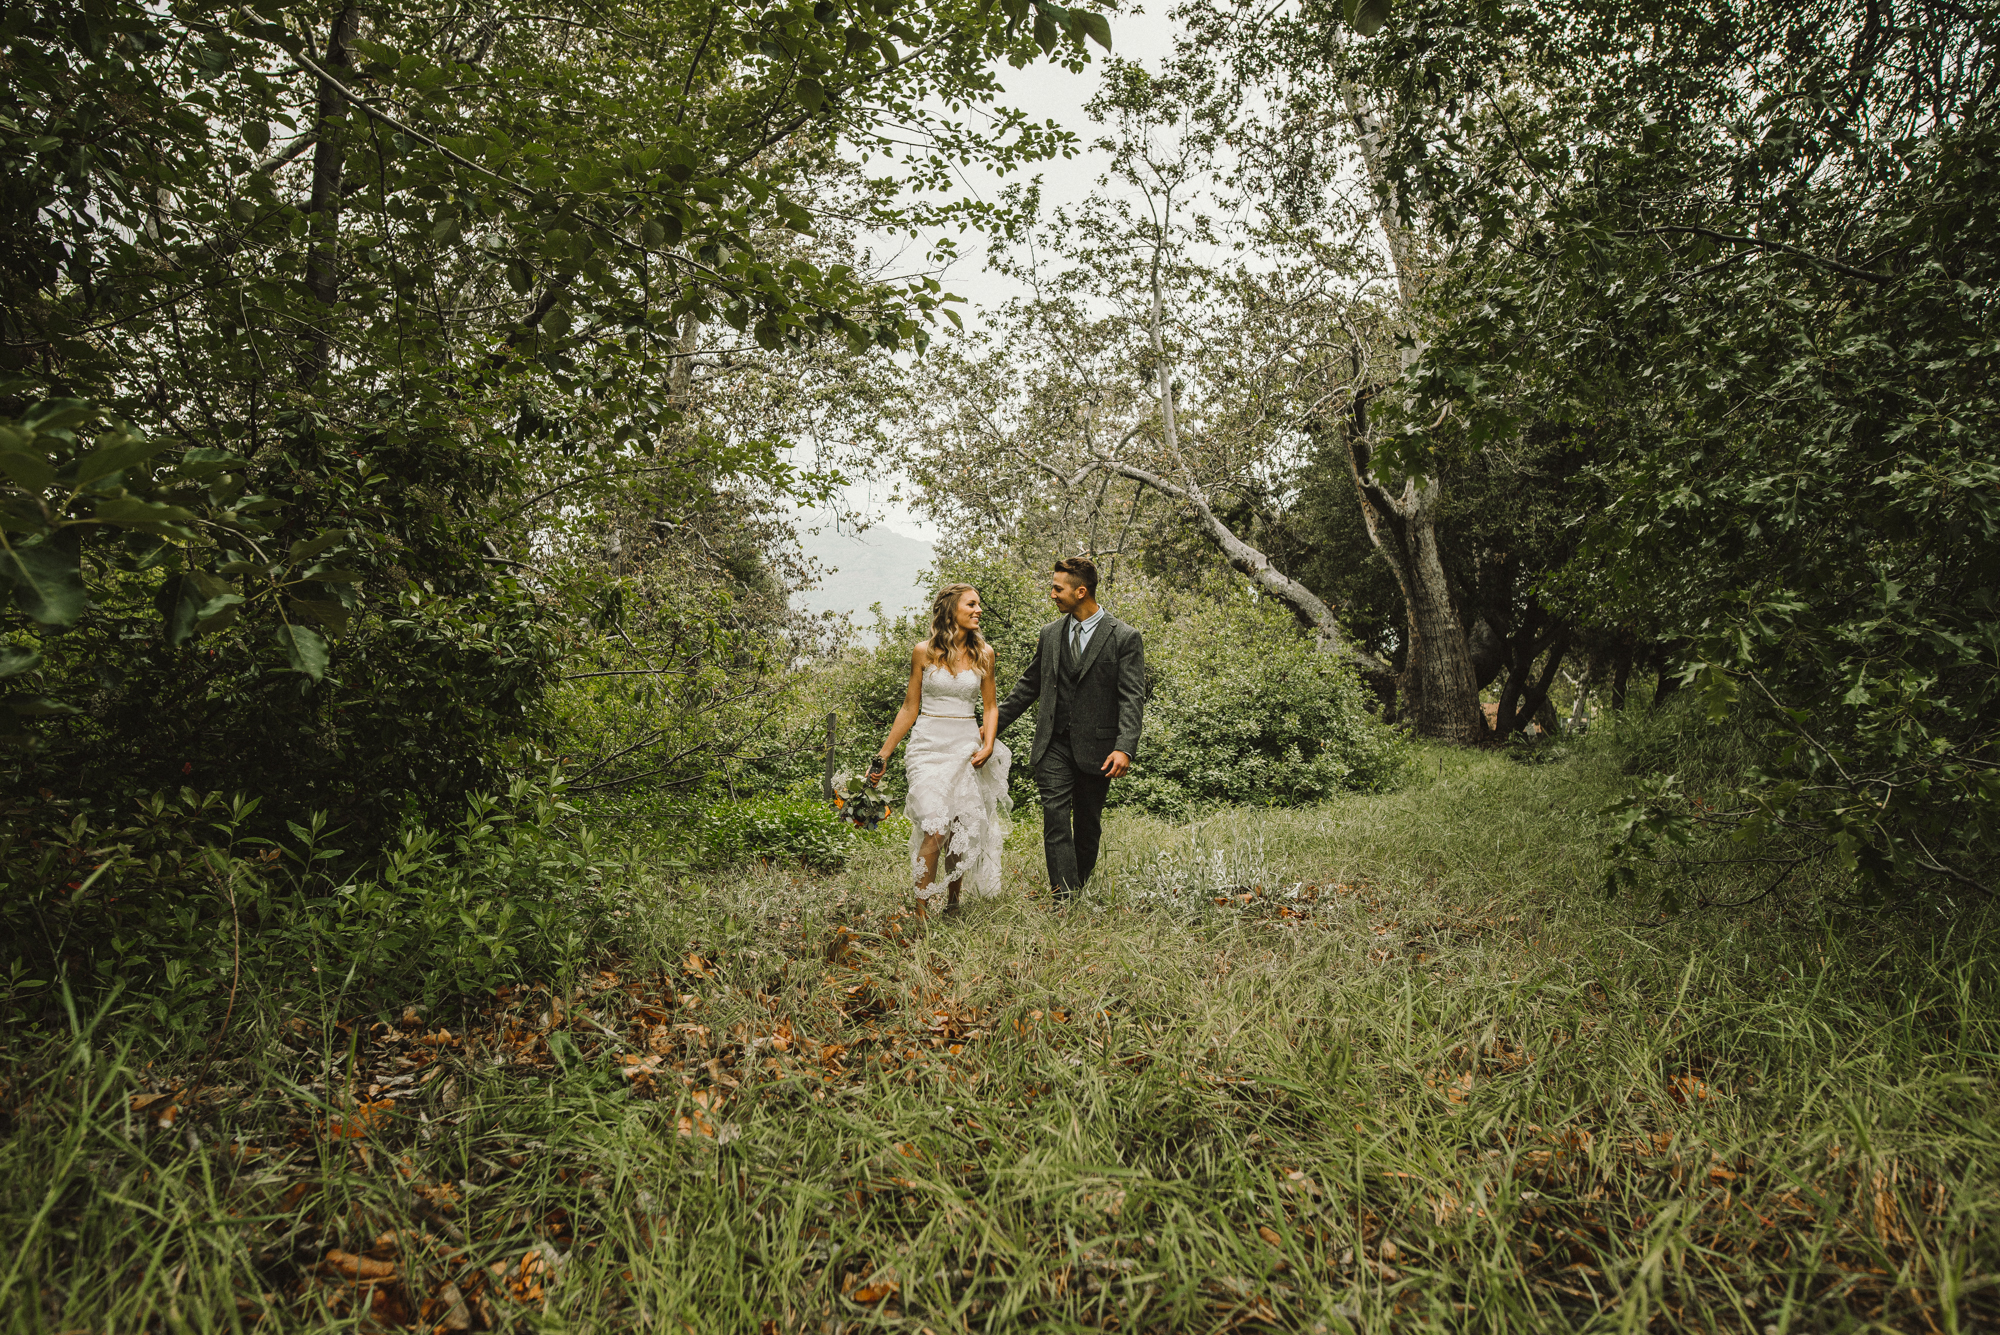 Isaiah & Taylor Photography - Los Angeles - Destination Wedding Photographers - Oak Glen Wilshire Ranch Foggy Forest Wedding-37.jpg